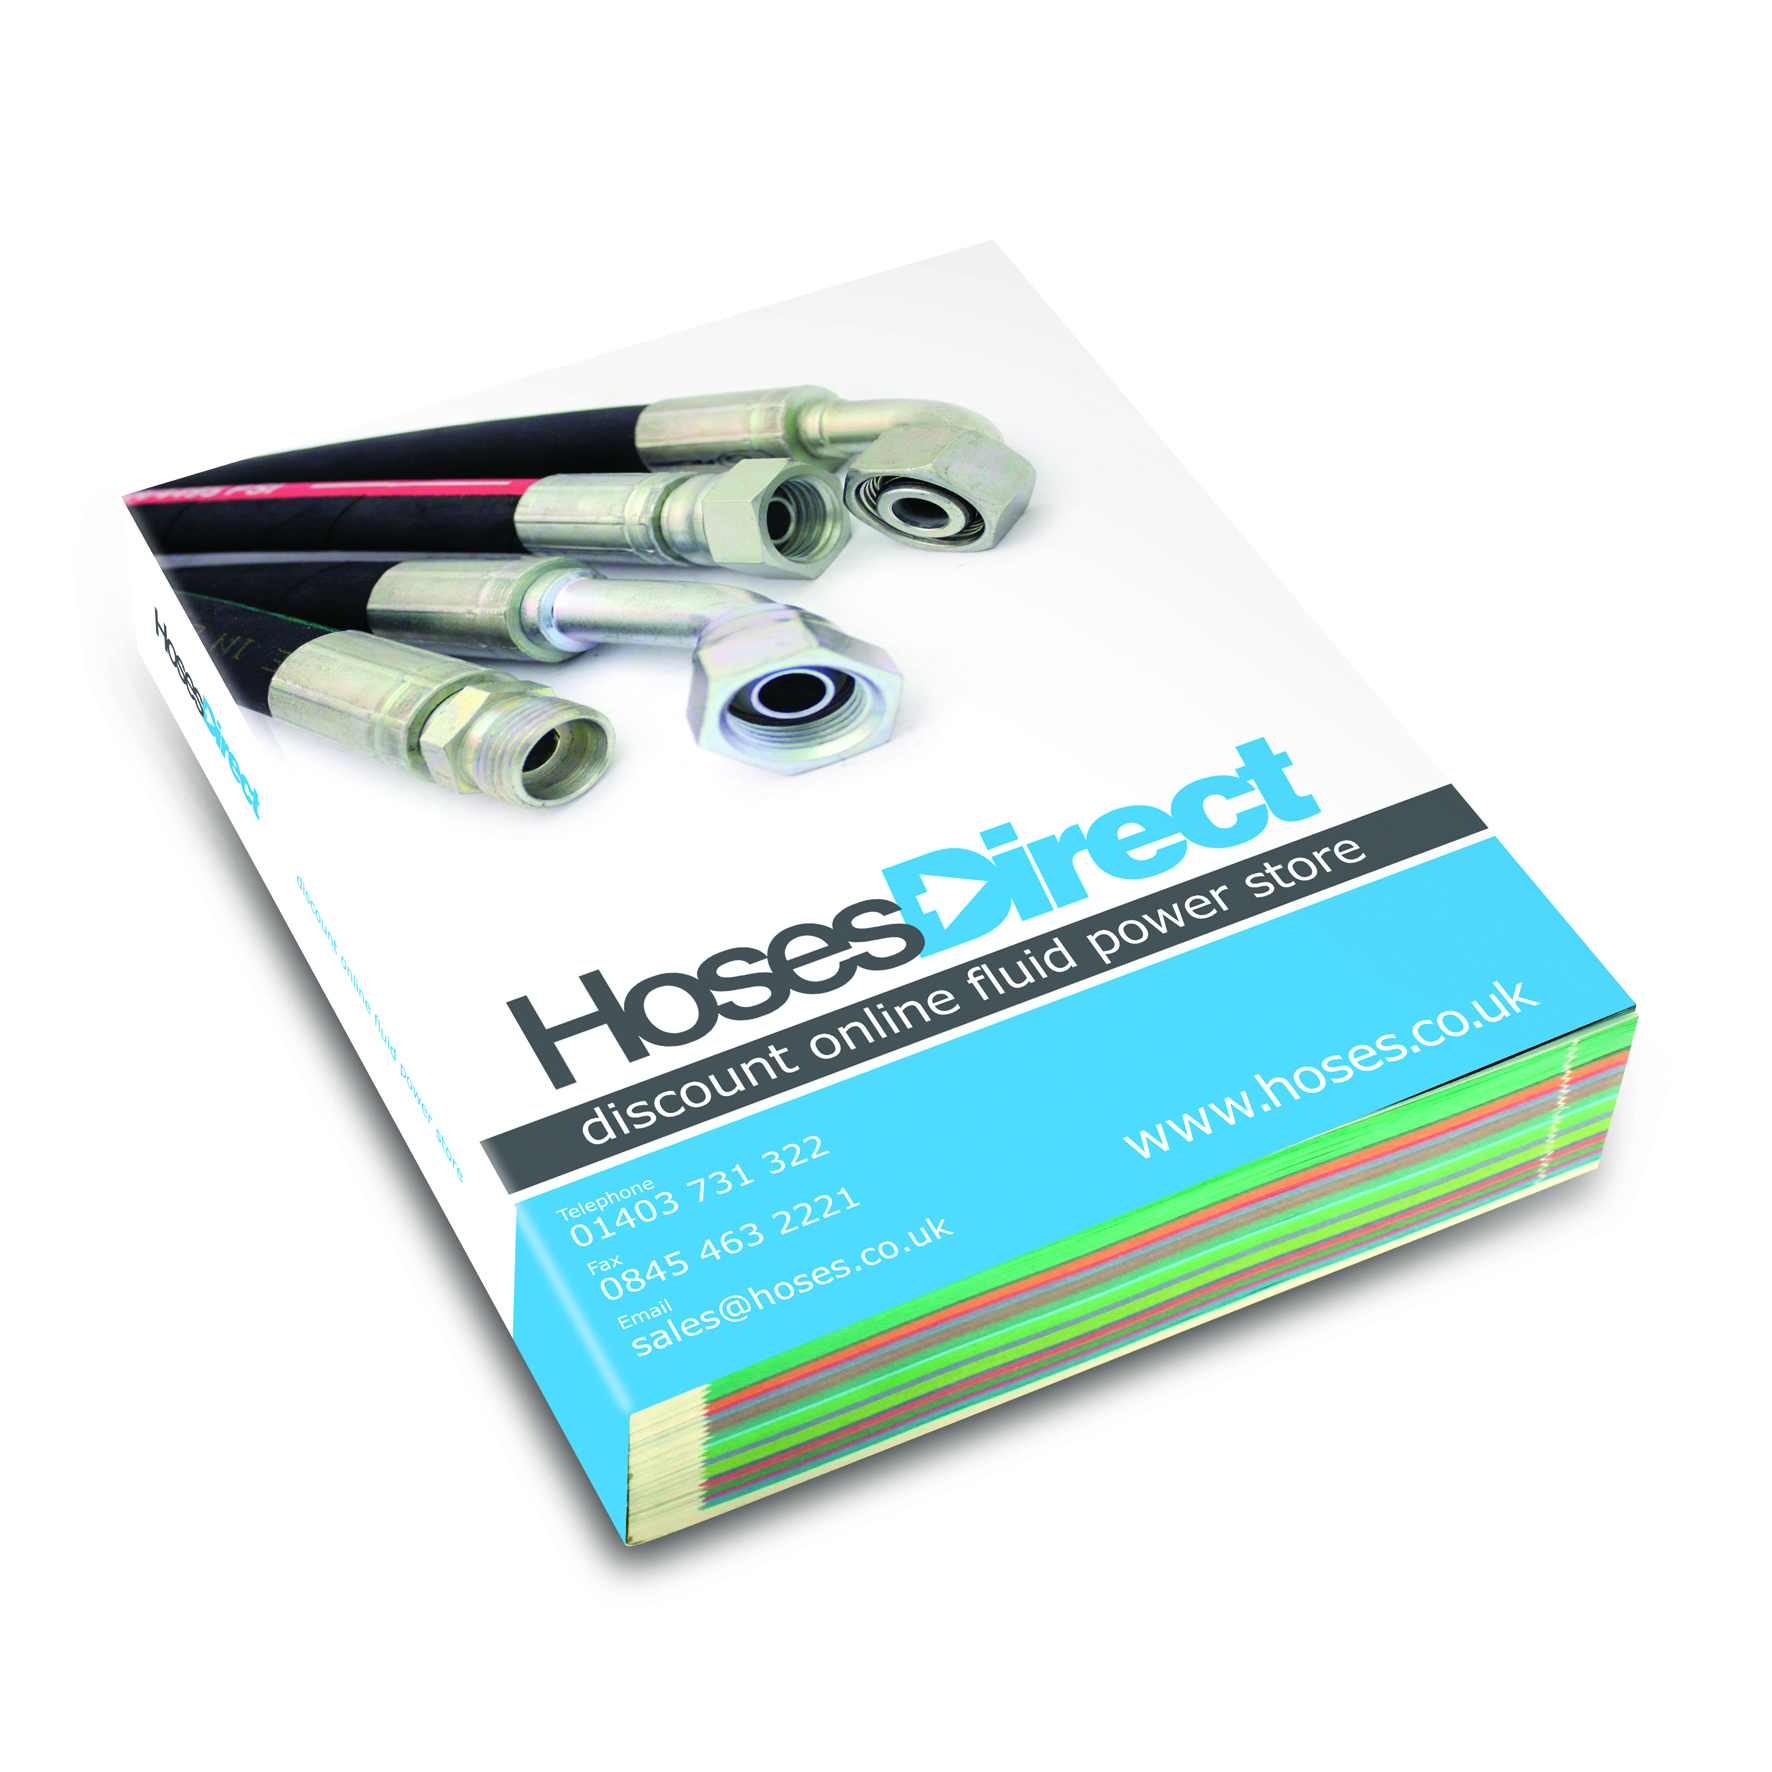 Hoses Direct 2013/2014 Catalogue [HOSES-CATALOGUE] - £0 00 : Hoses